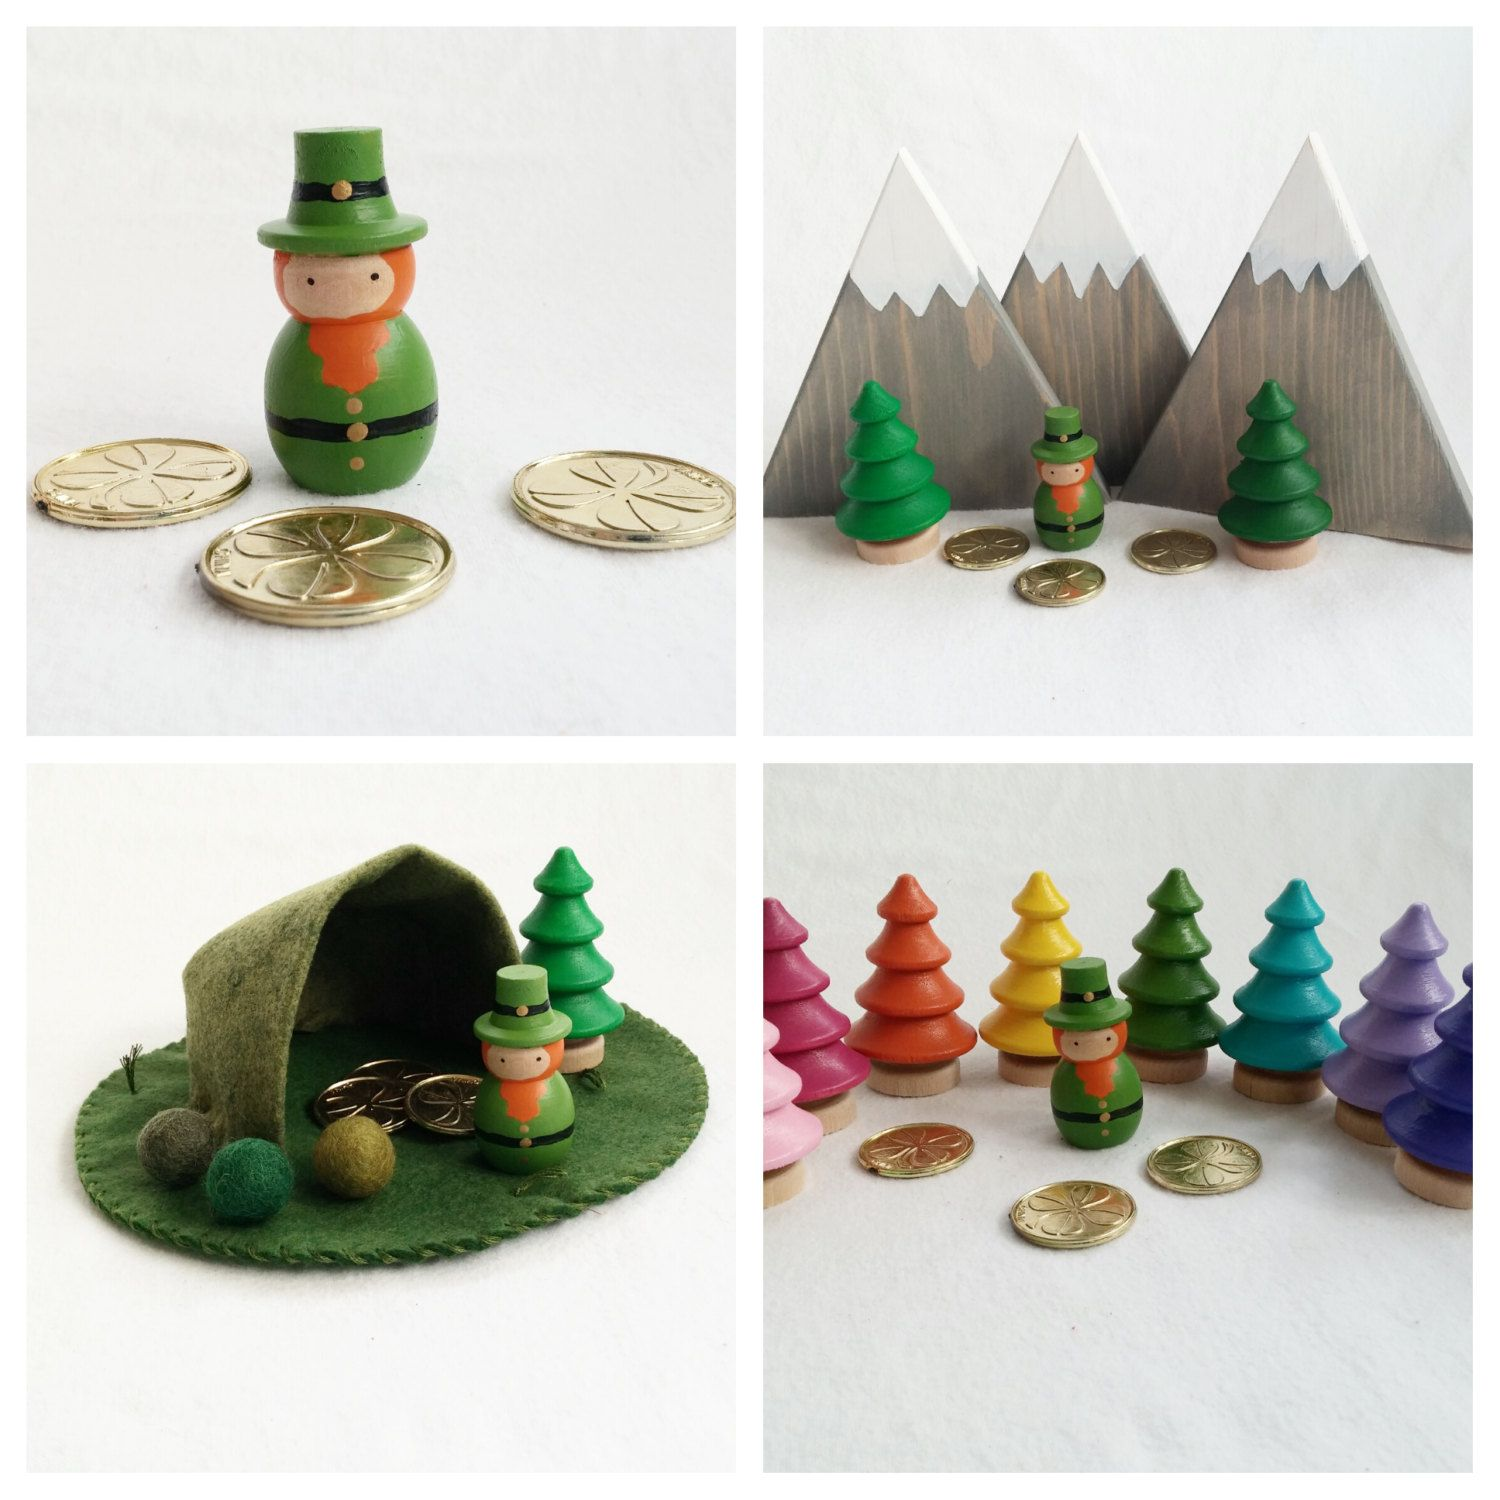 Leprechaun Peg Doll set St. Patrick's day toy Irish Gold child pretend play mat accessory open-ended storytelling fantasy by MyBigWorld2015 on Etsy